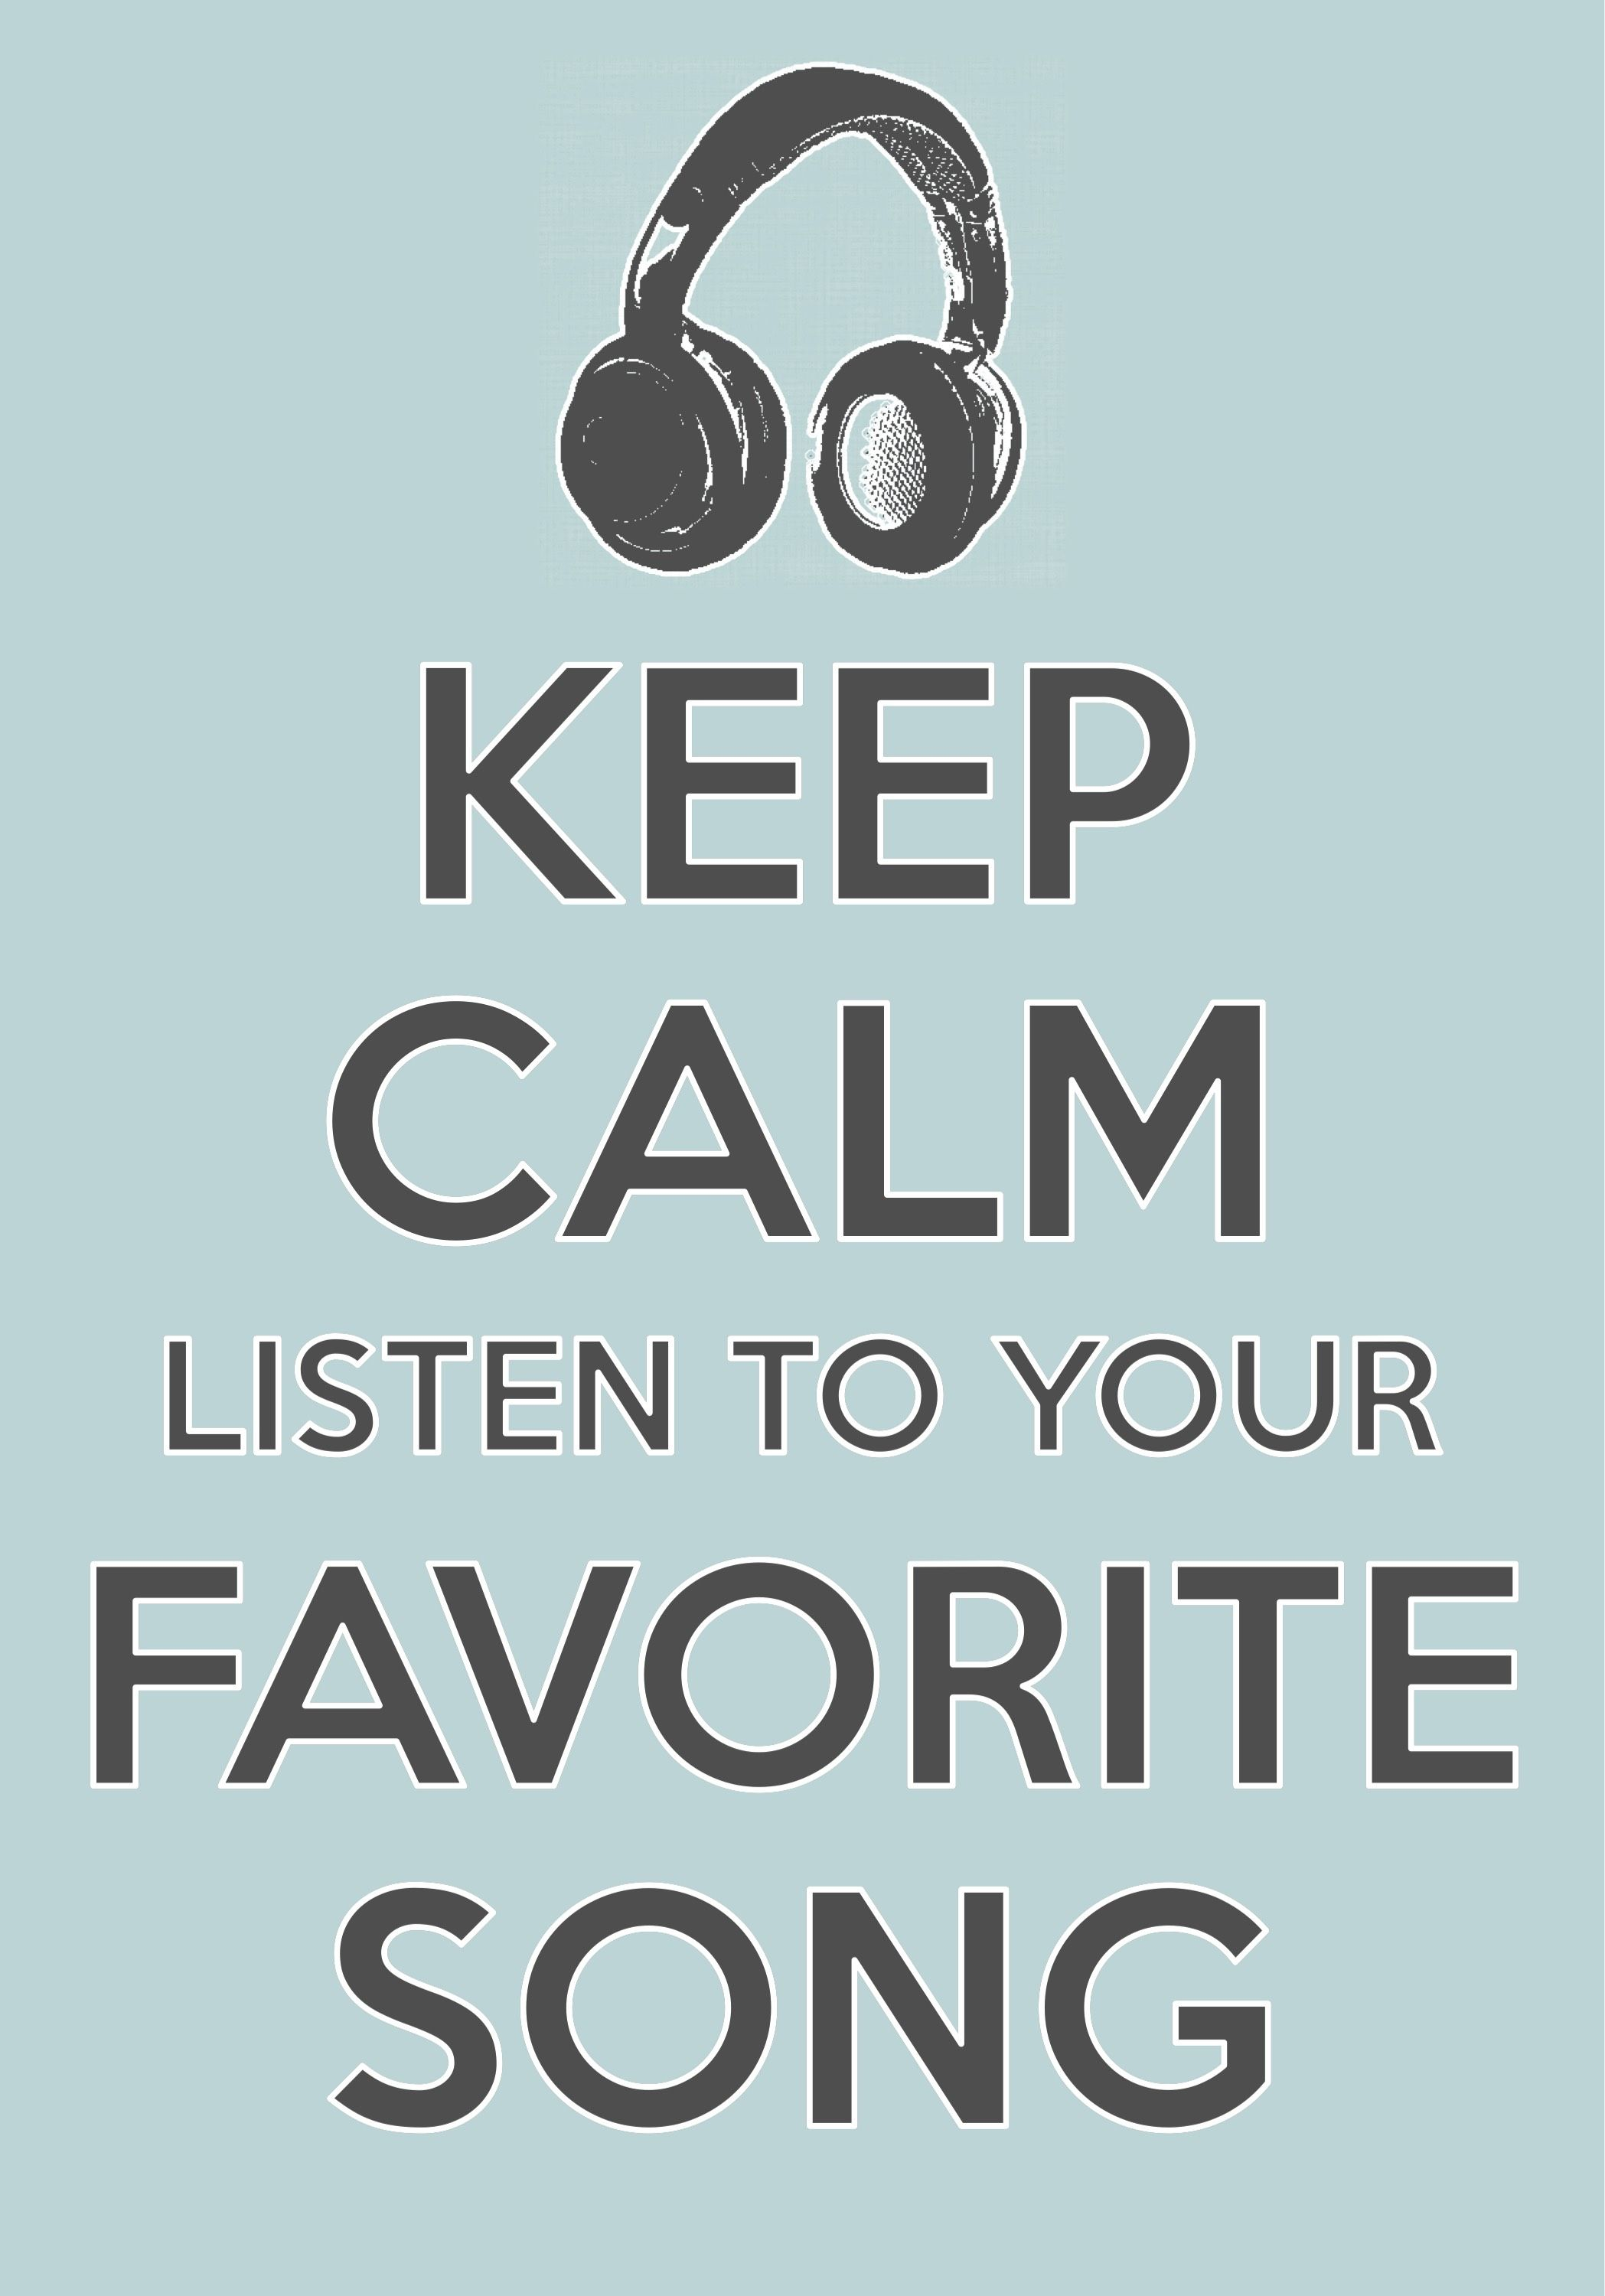 keep calm listen to your favorite song created with keep calm and